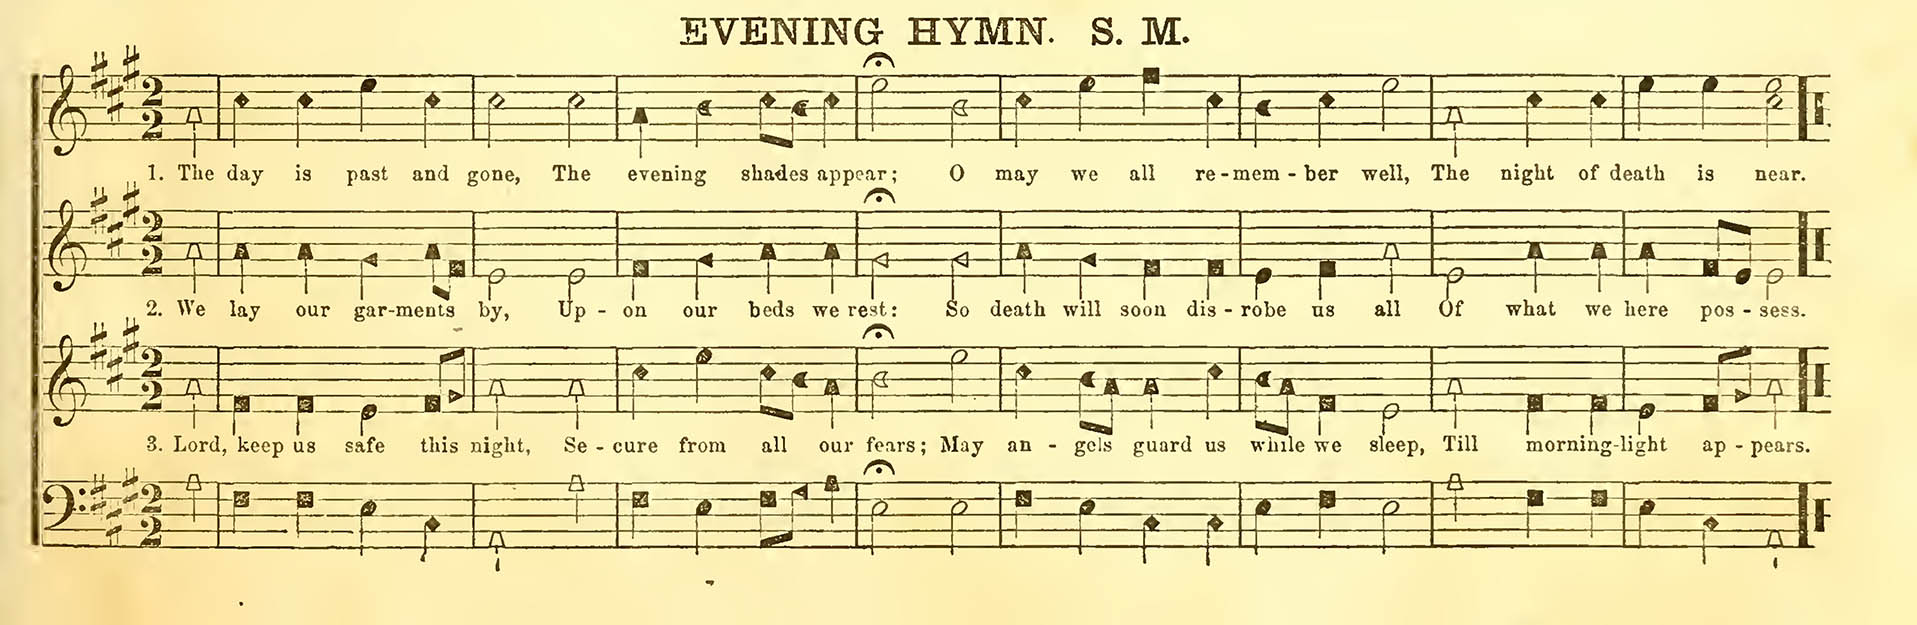 evening-hymn-christian-harmony